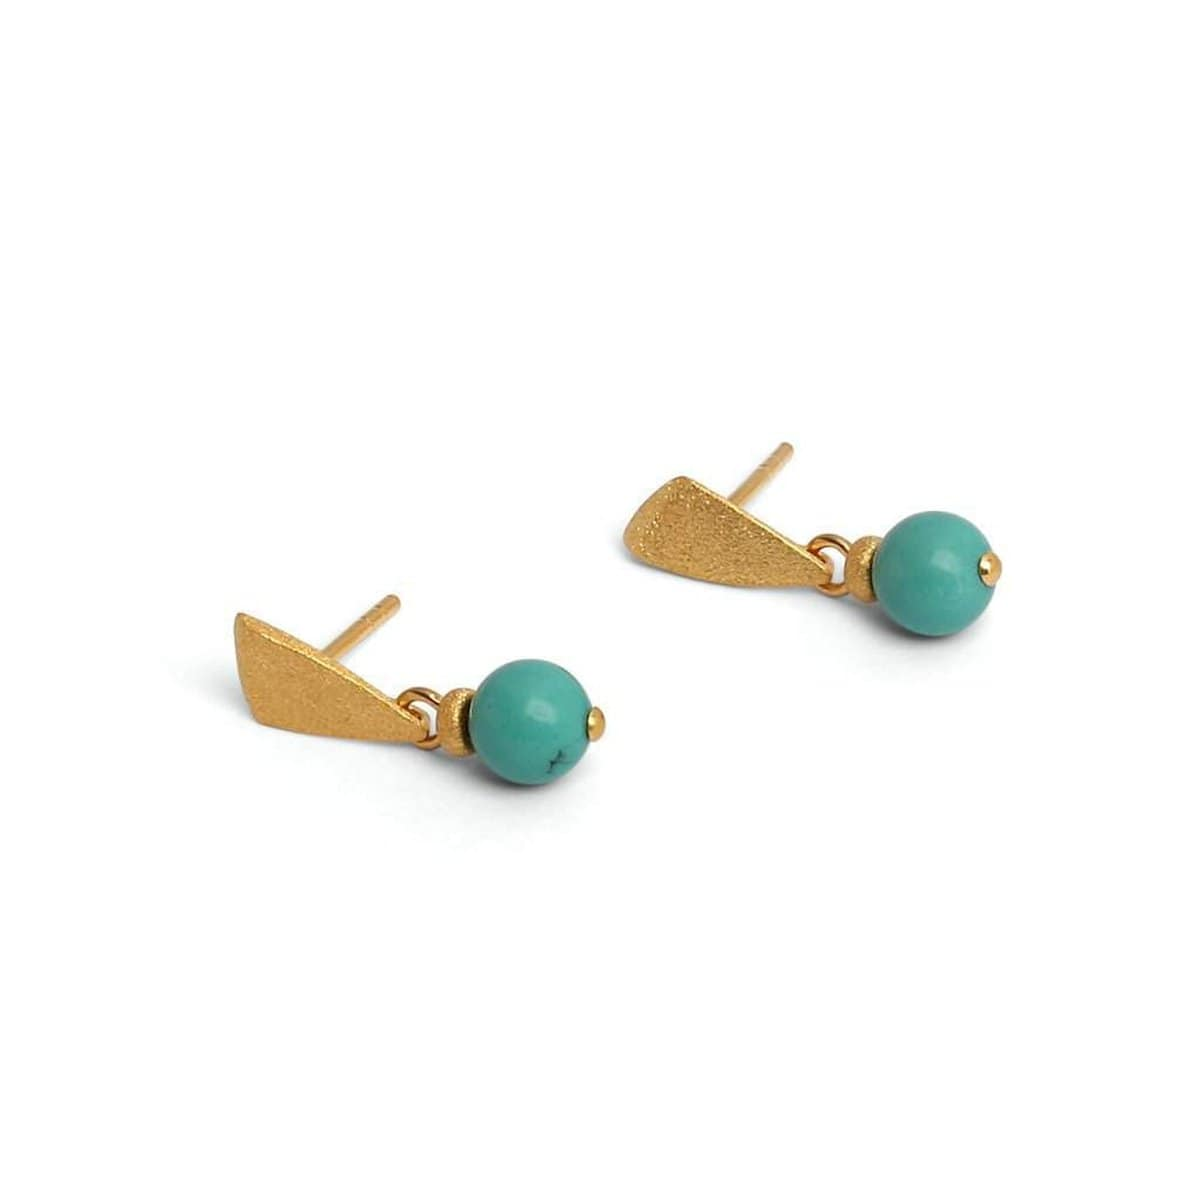 Kite Turquoise Earrings - 15511256